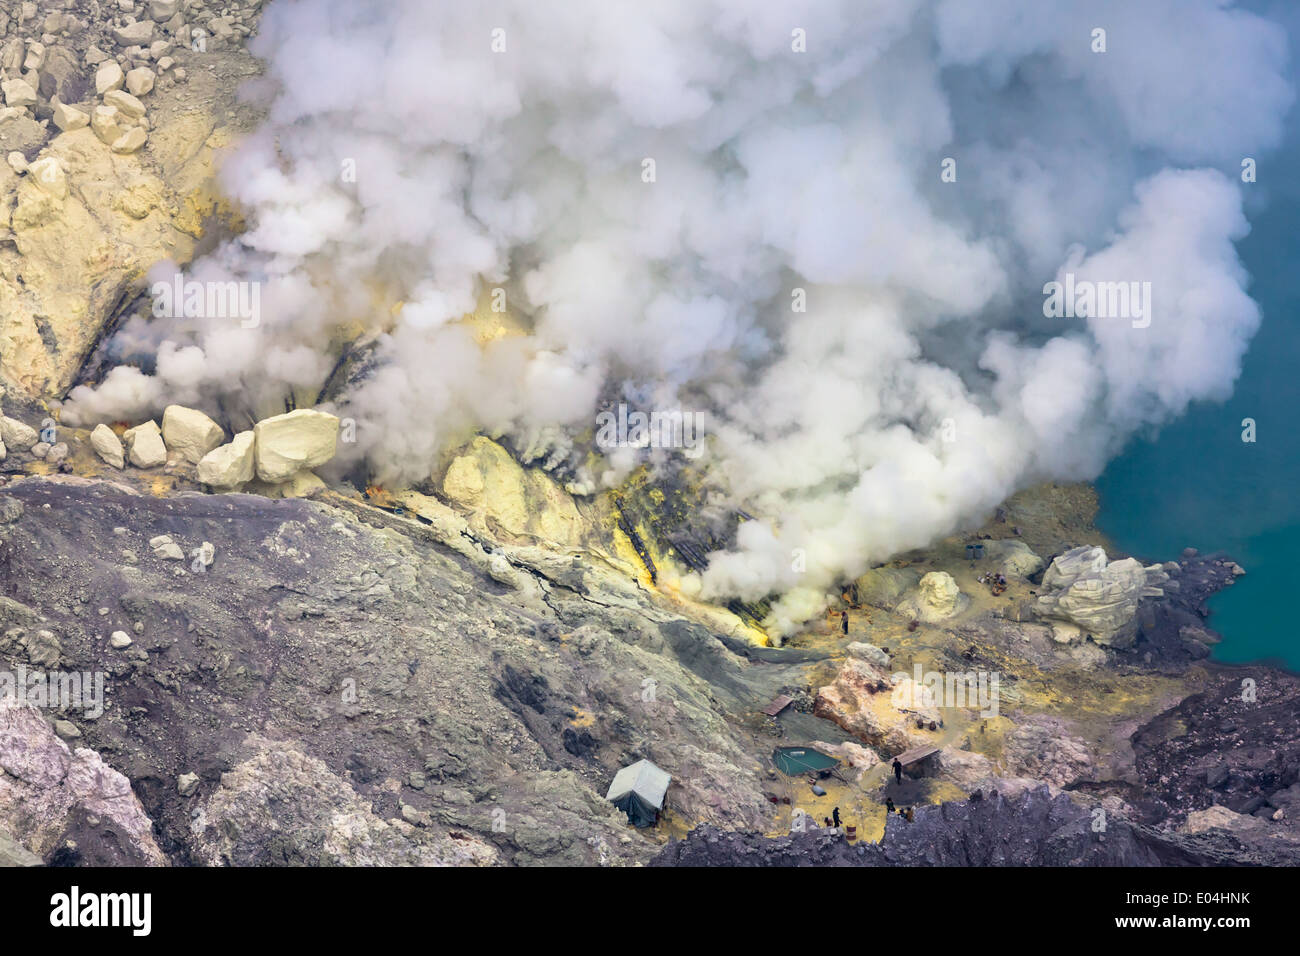 Sulfur mine near turquoise acid crater lake, Kawah Ijen, Banyuwangi Regency, East Java, Indonesia Stock Photo